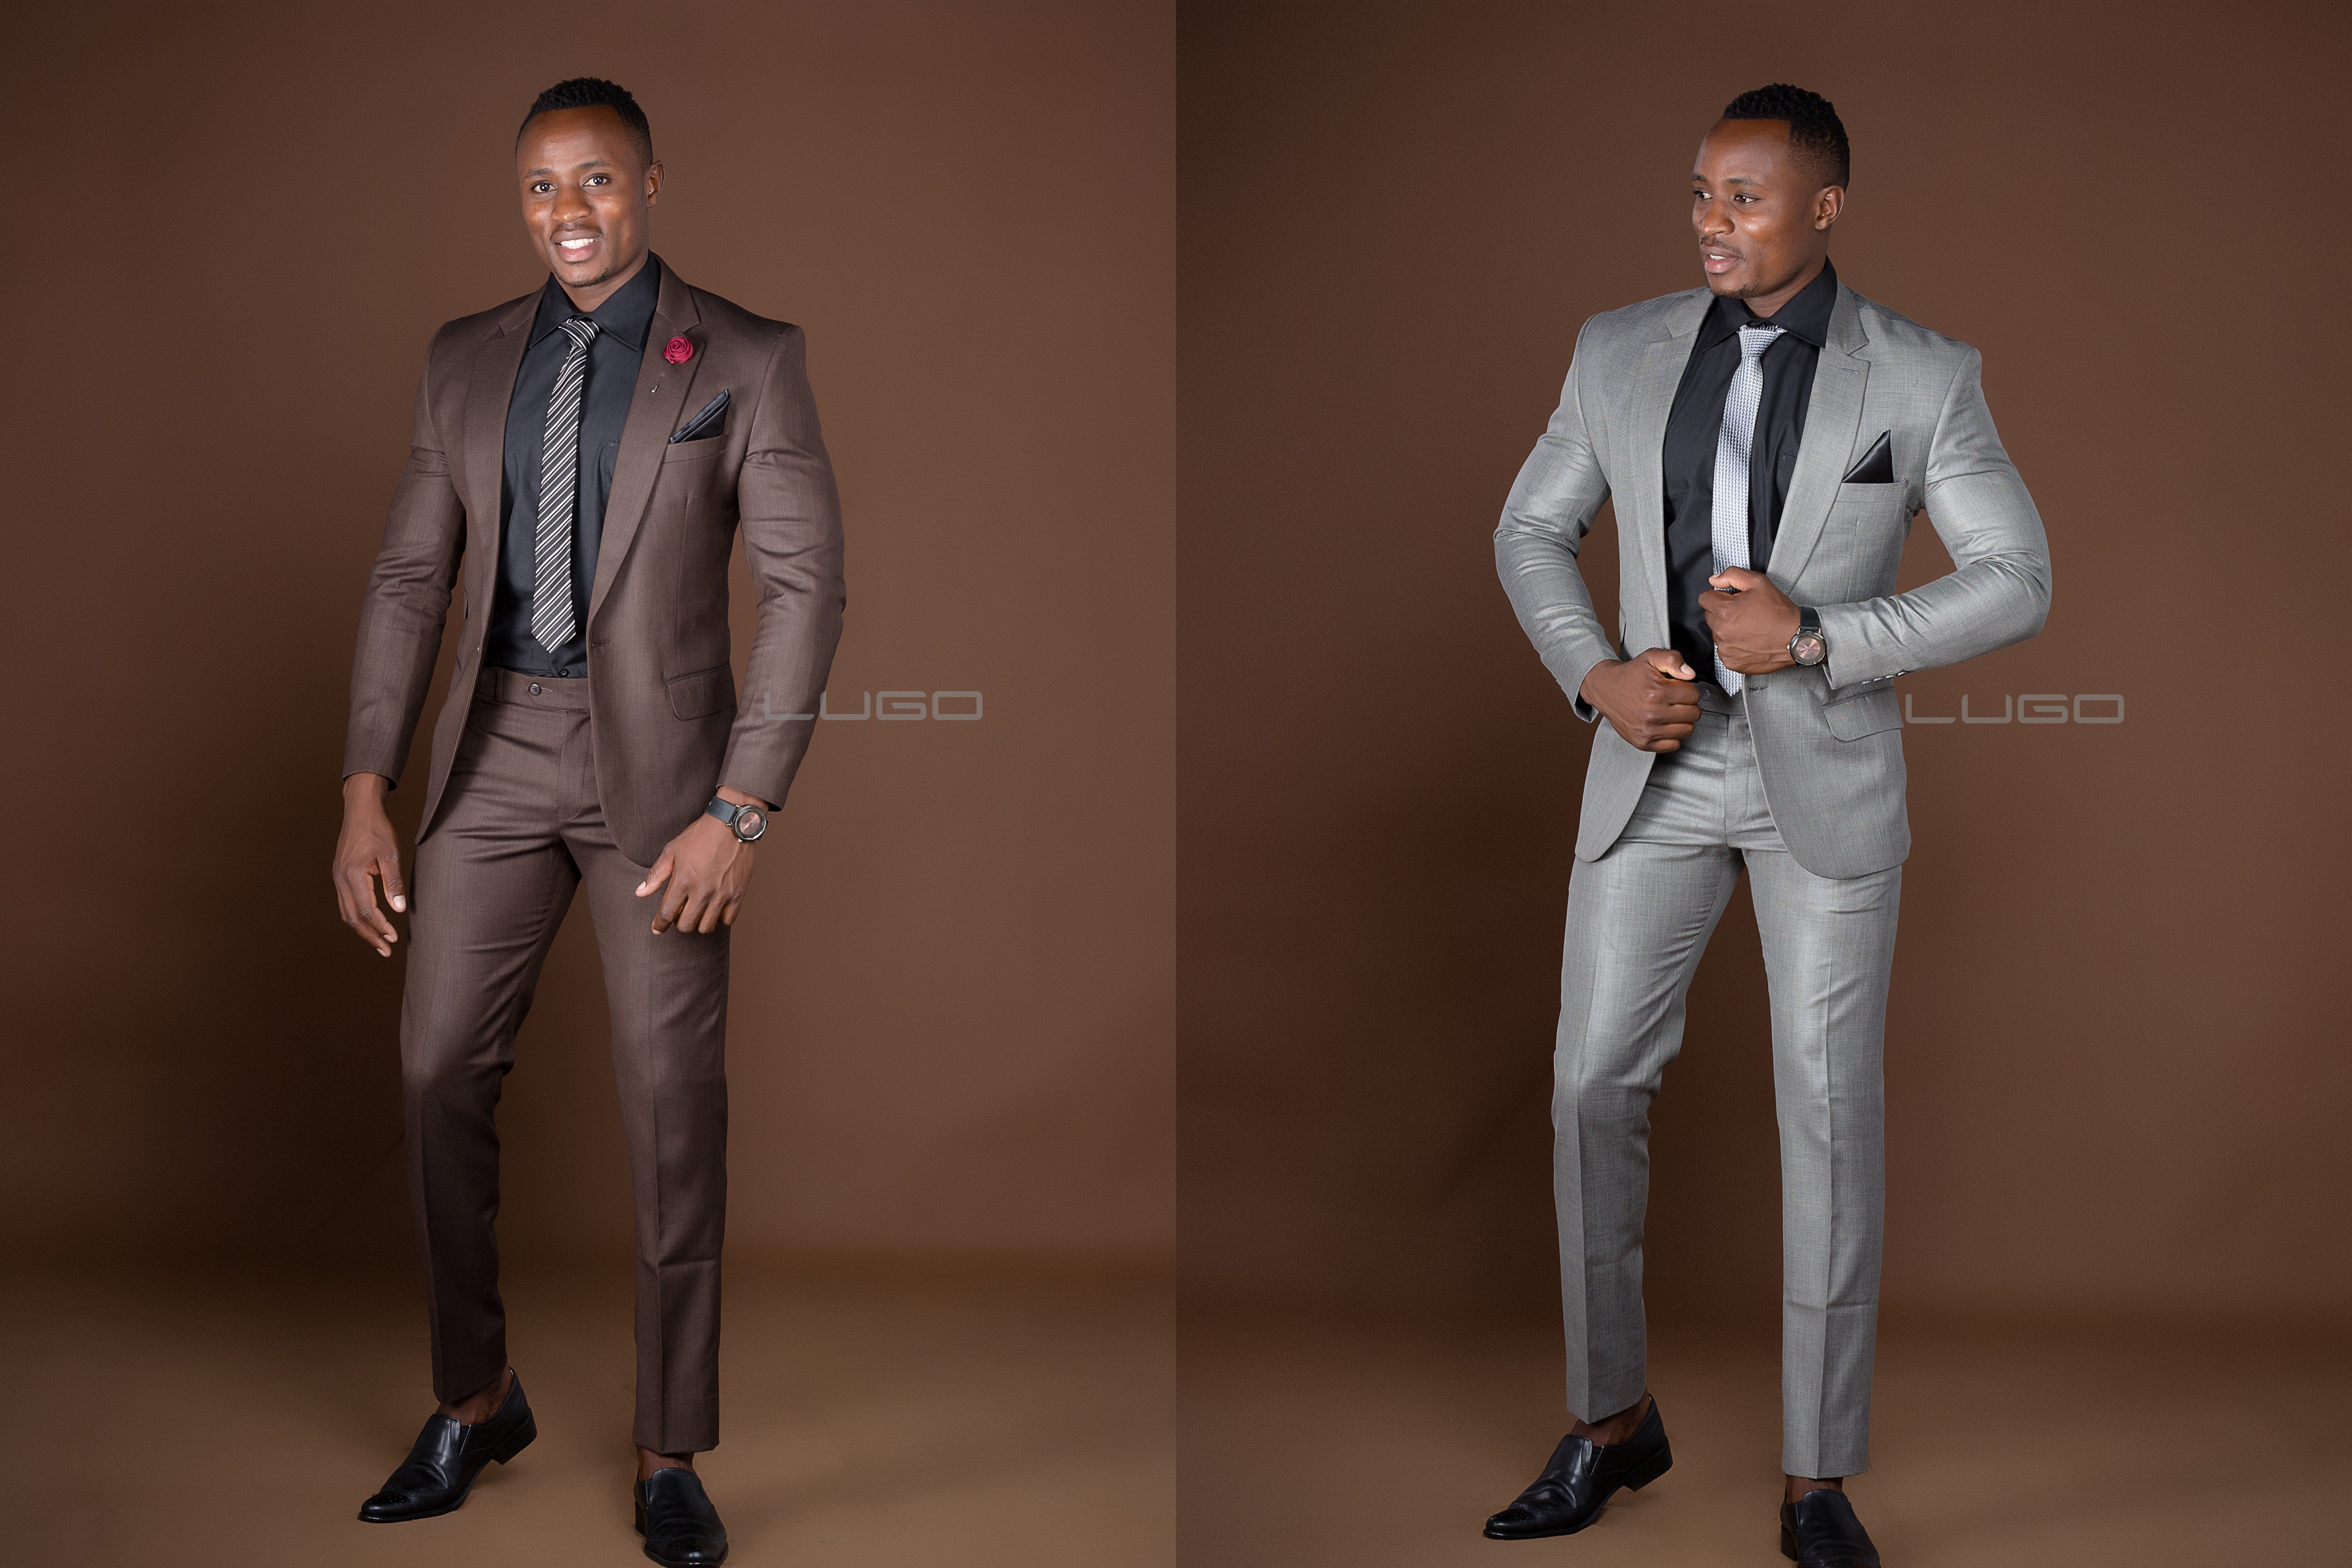 Look good in our custom made suits